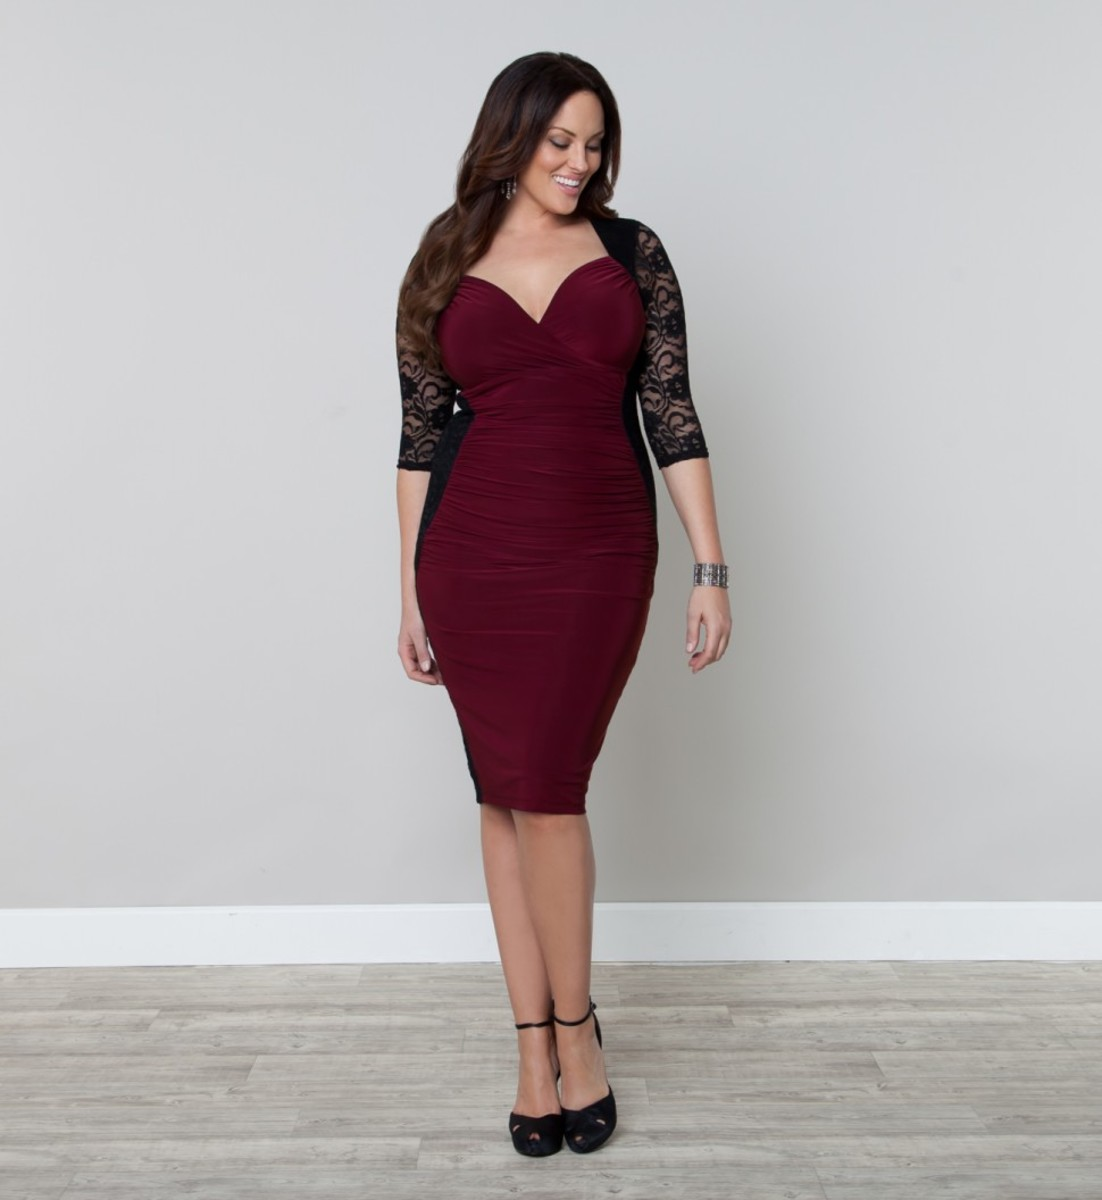 Be stunning in this lovely ruched dress from Kiyonna.